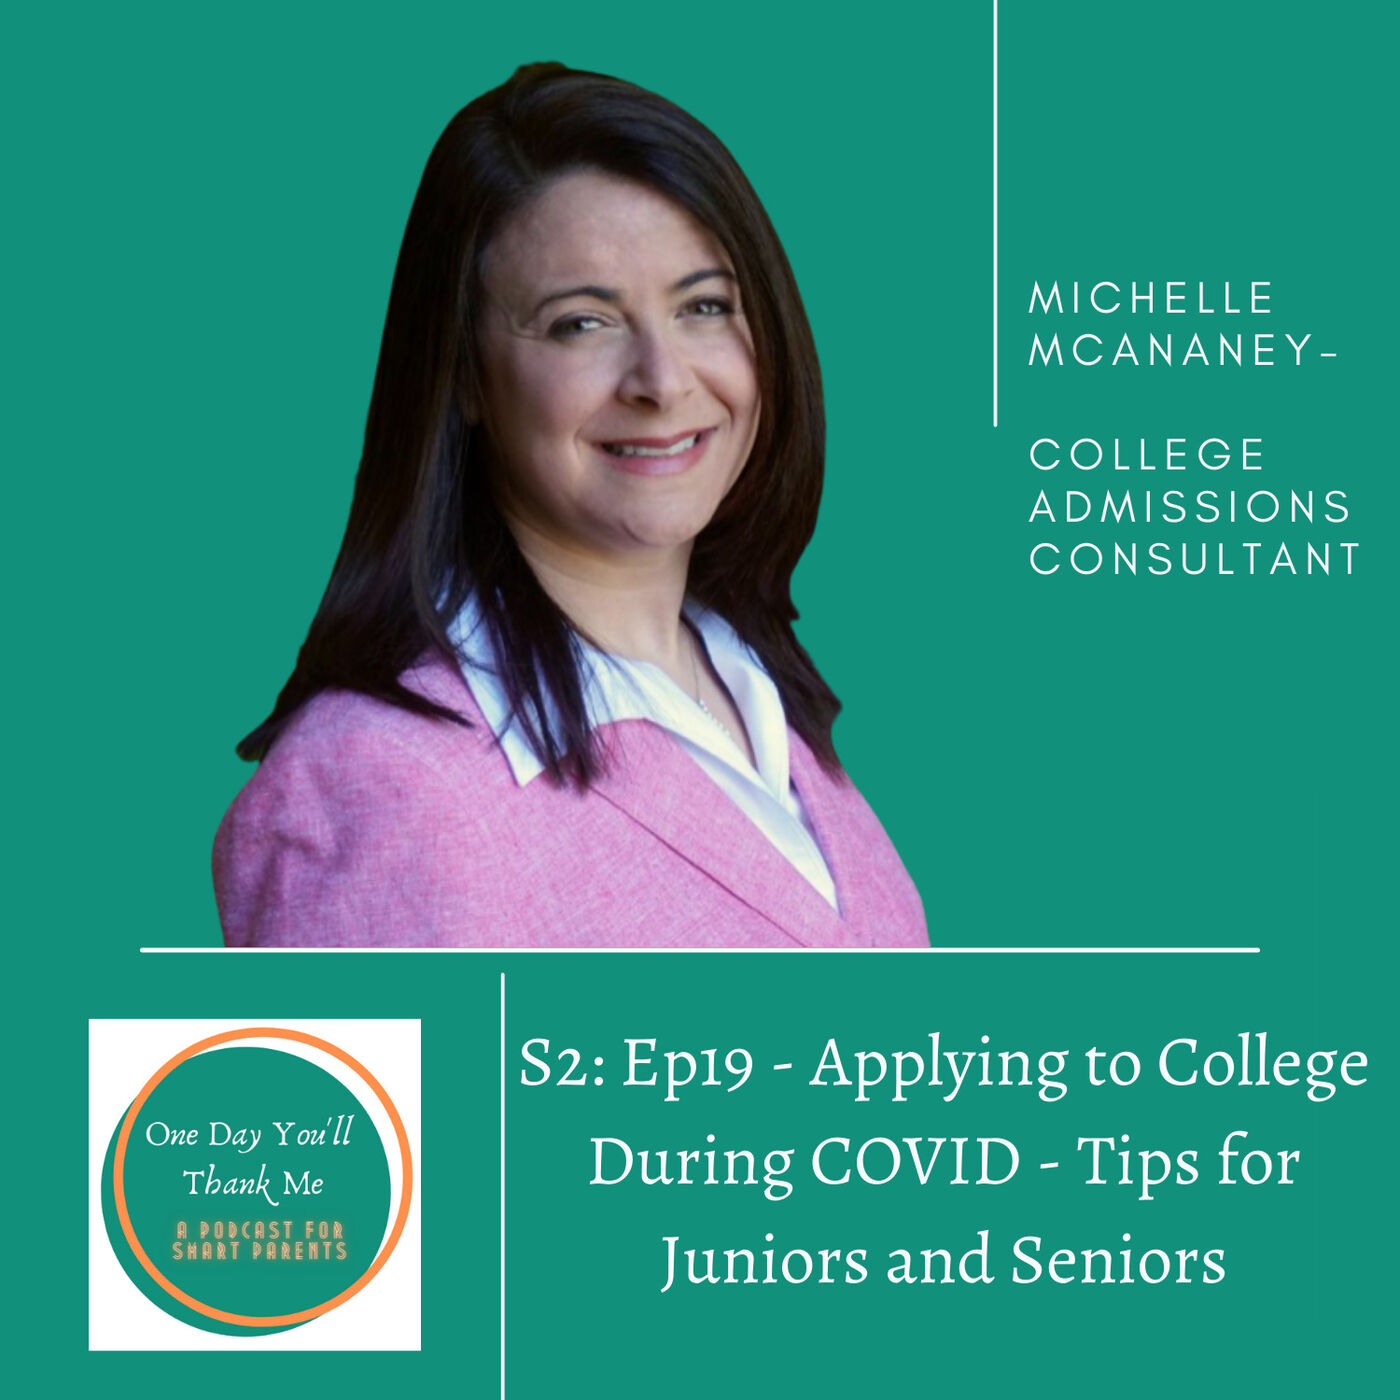 S2: E19 - Guest Expert: Michelle McAnaney, College Admissions Consultant - Applying to College During COVID - Tips for Juniors and Seniors